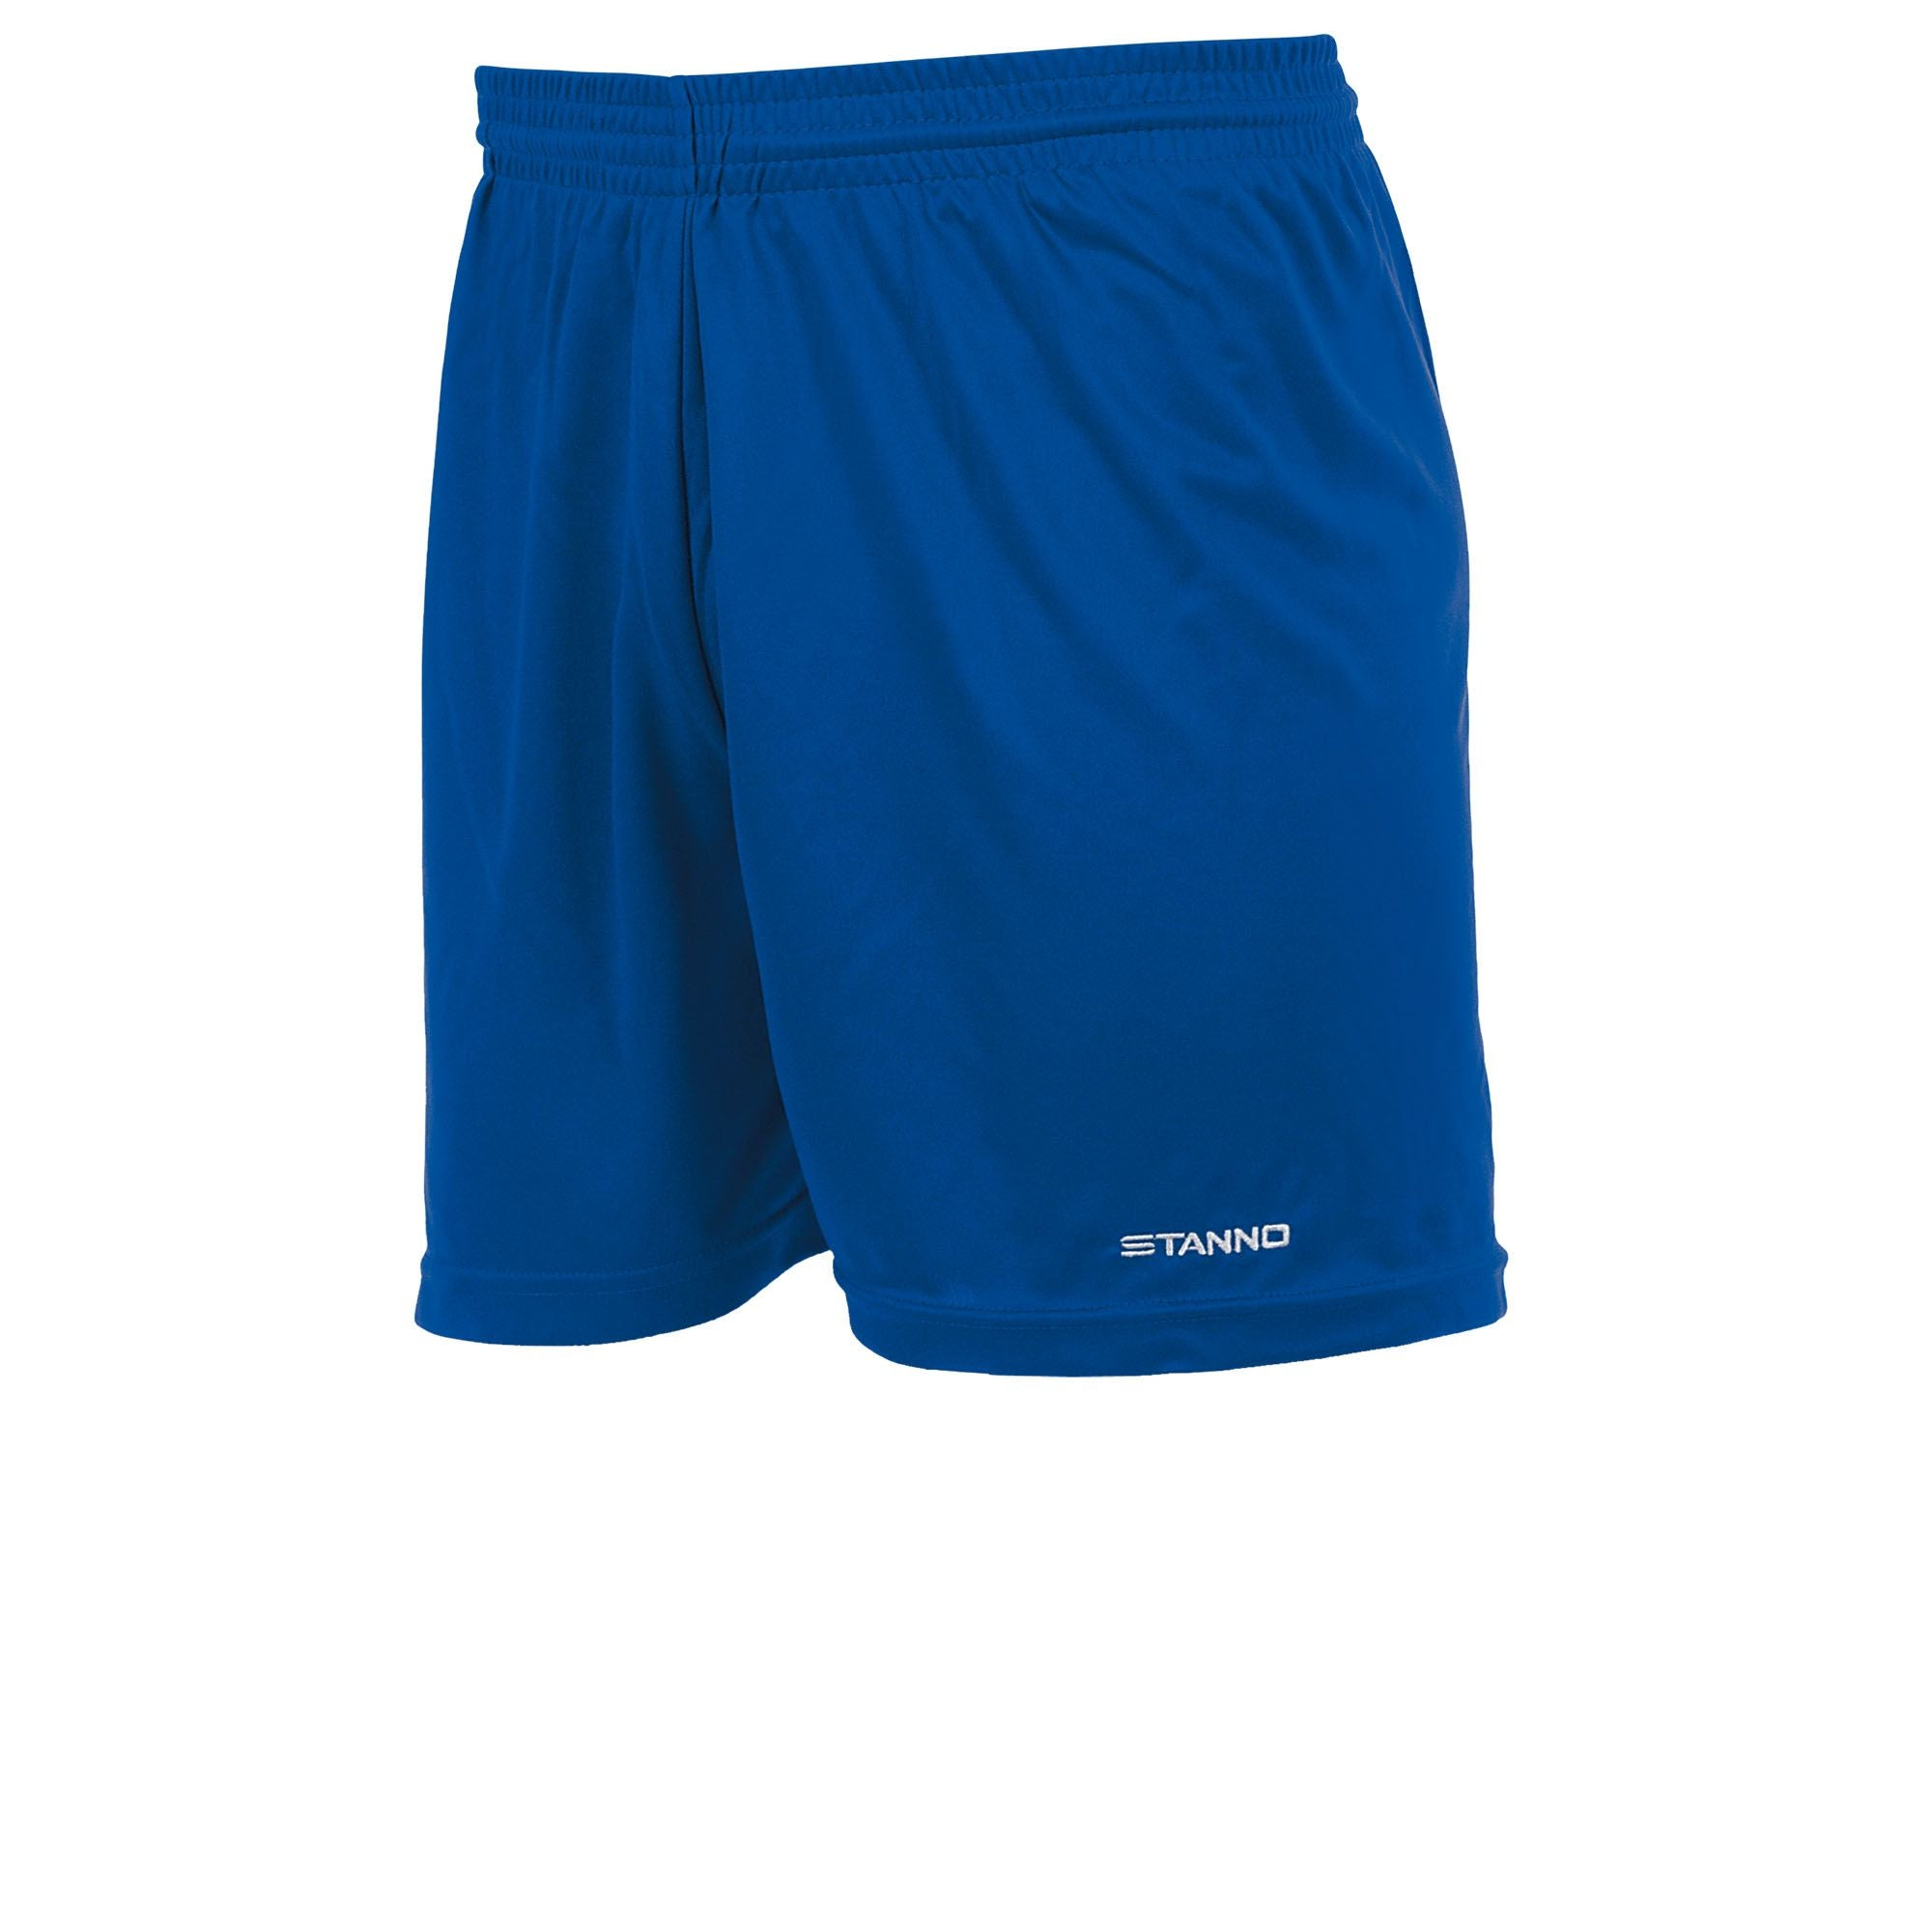 Dexters Home - Stanno Club Shorts - Royal